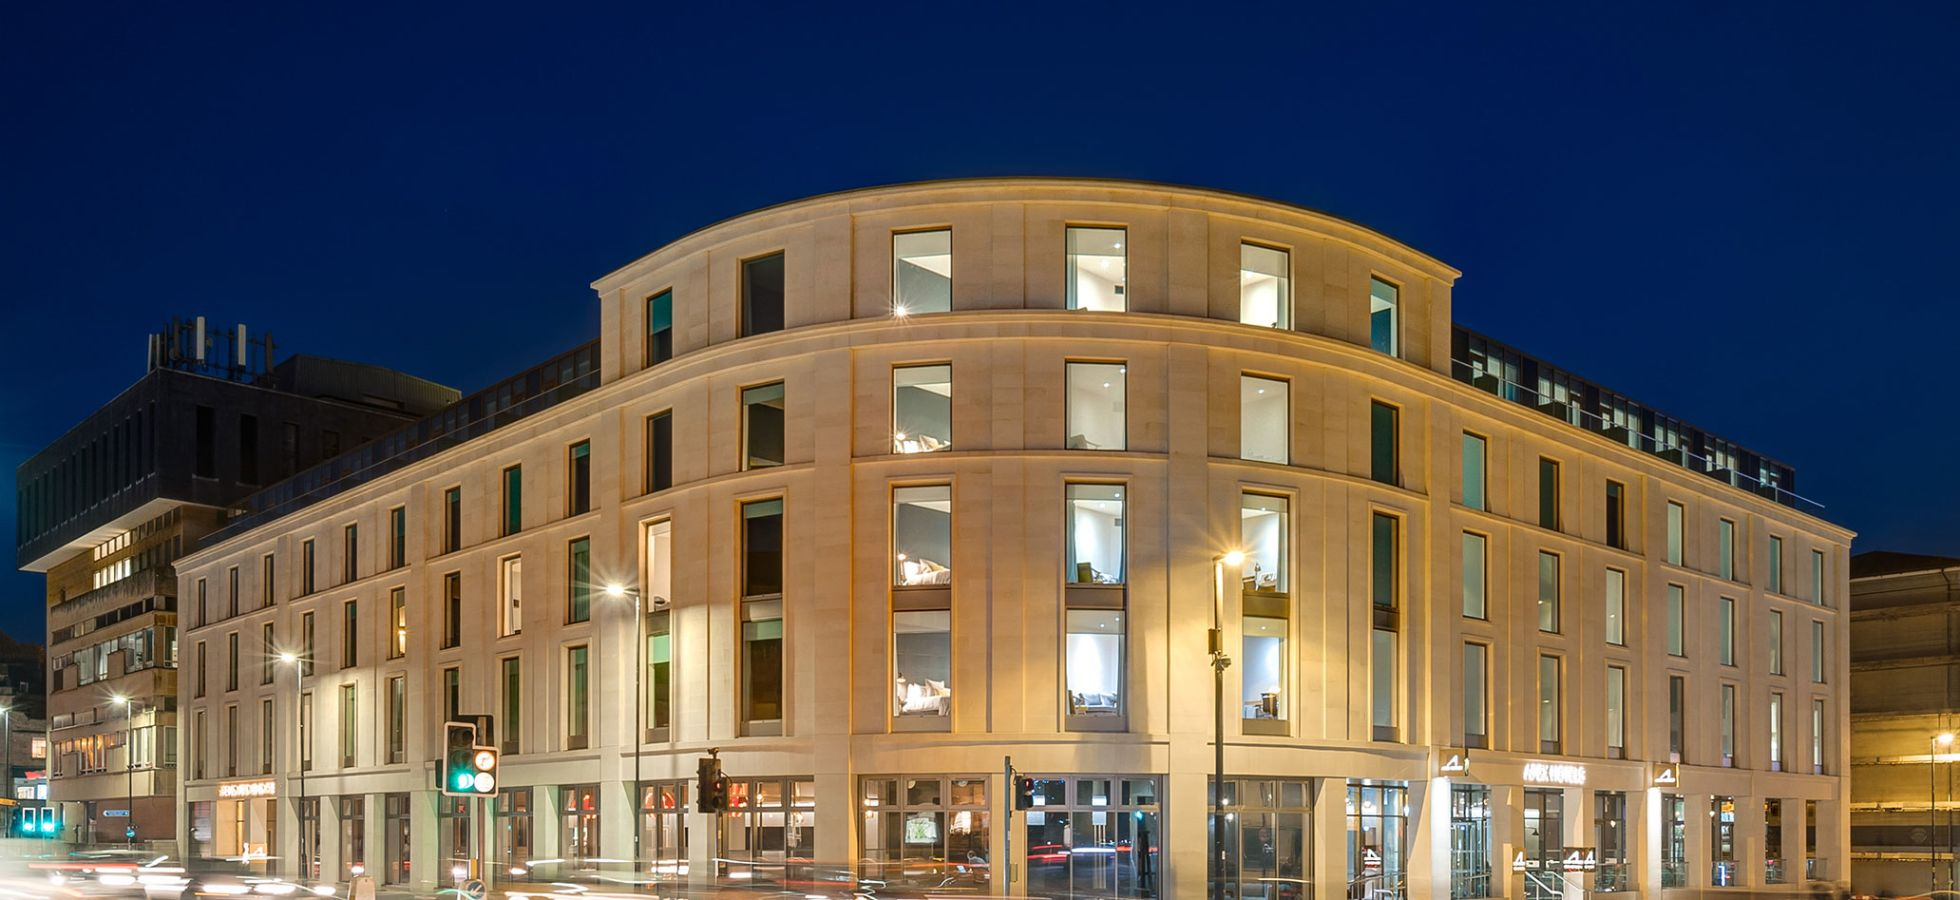 The Apex Hotel, Bath to host AEBAH launch event